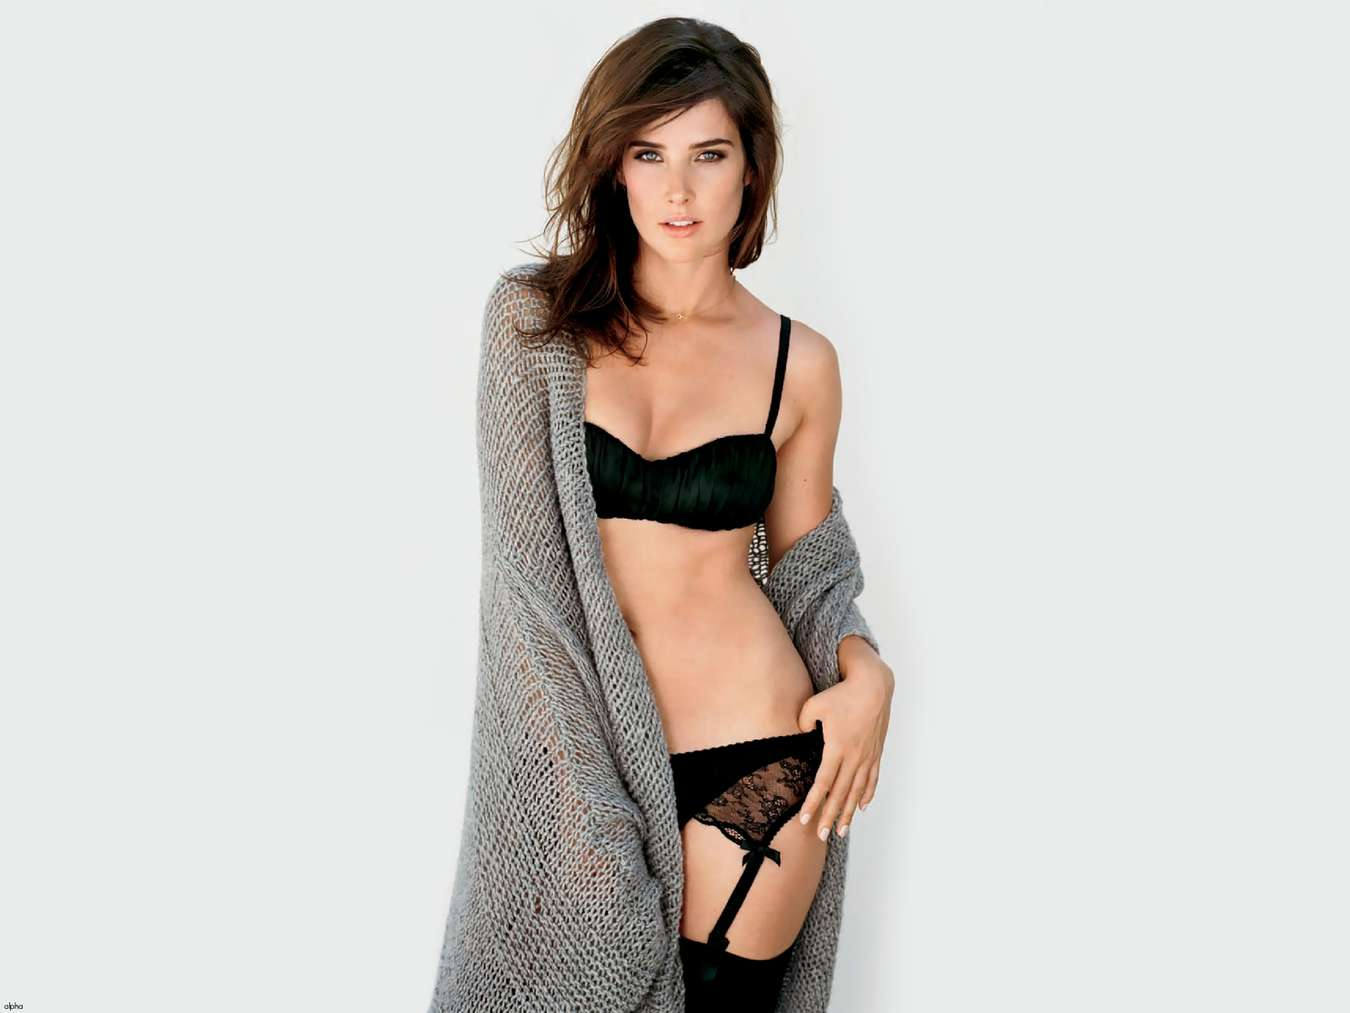 Cobie-Smulders-Hot-15-Wallpapers-04 – Taylor Network of ... Jessica Alba